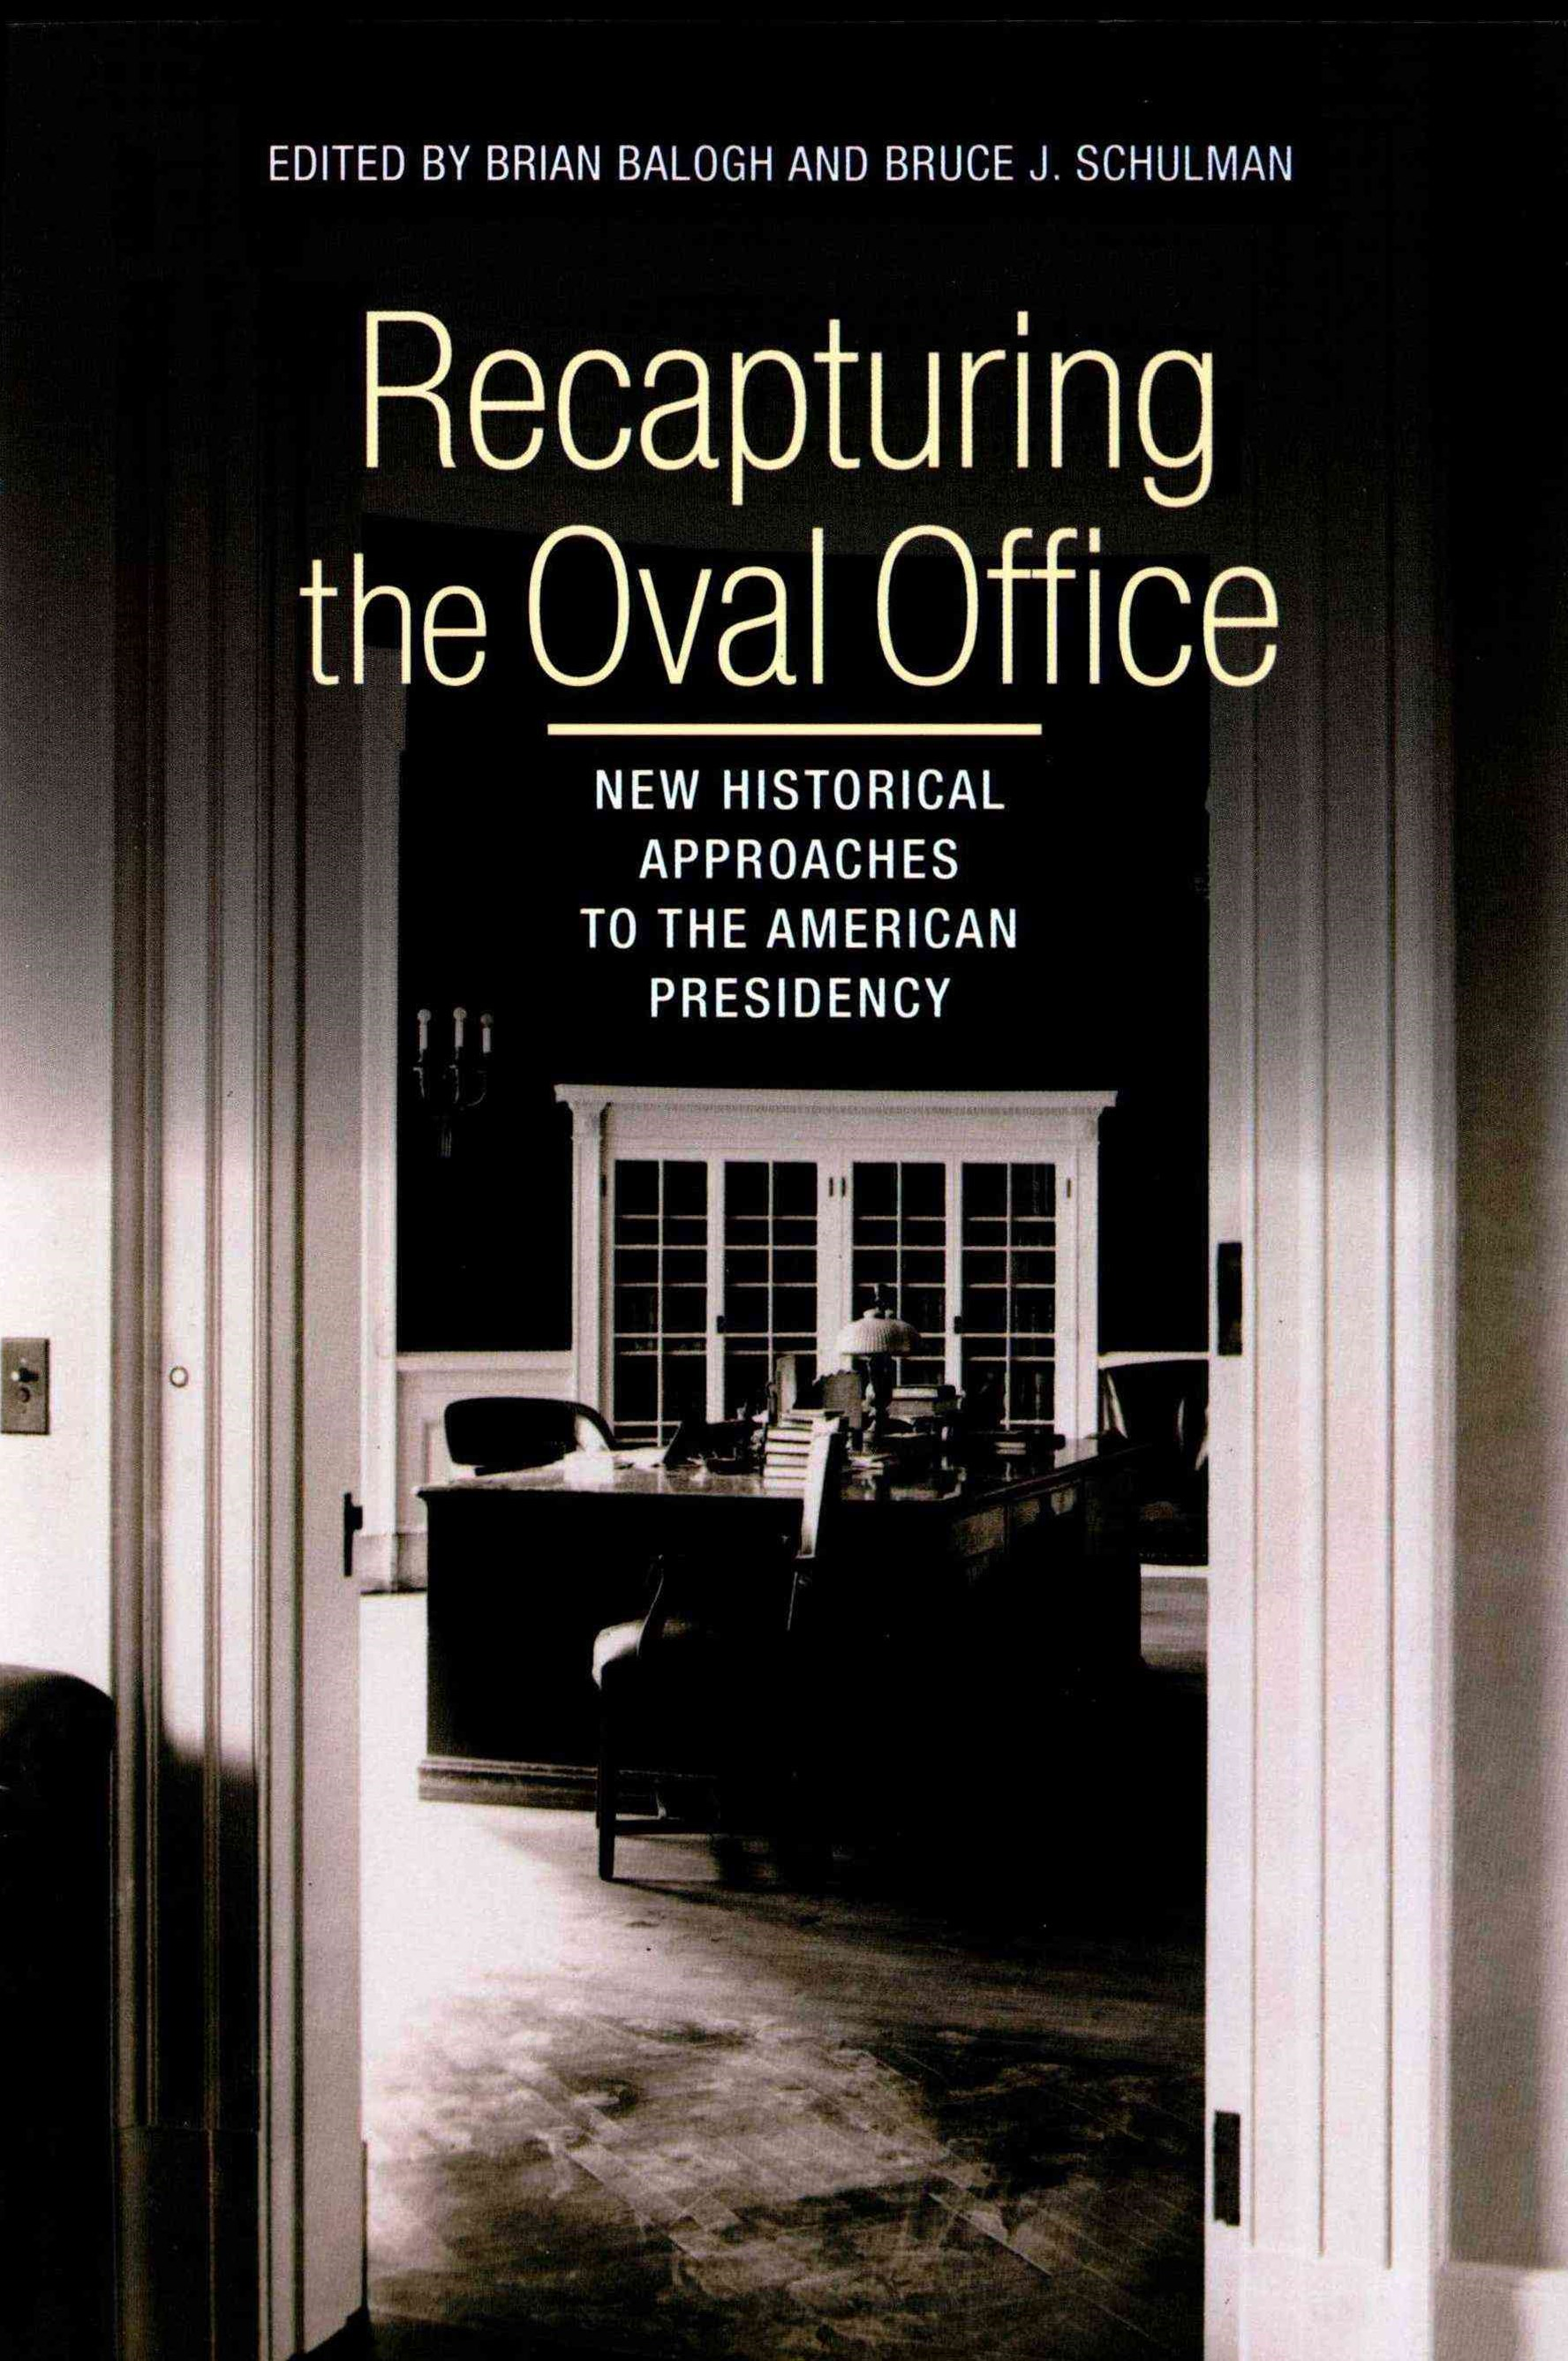 Recapturing the Oval Office